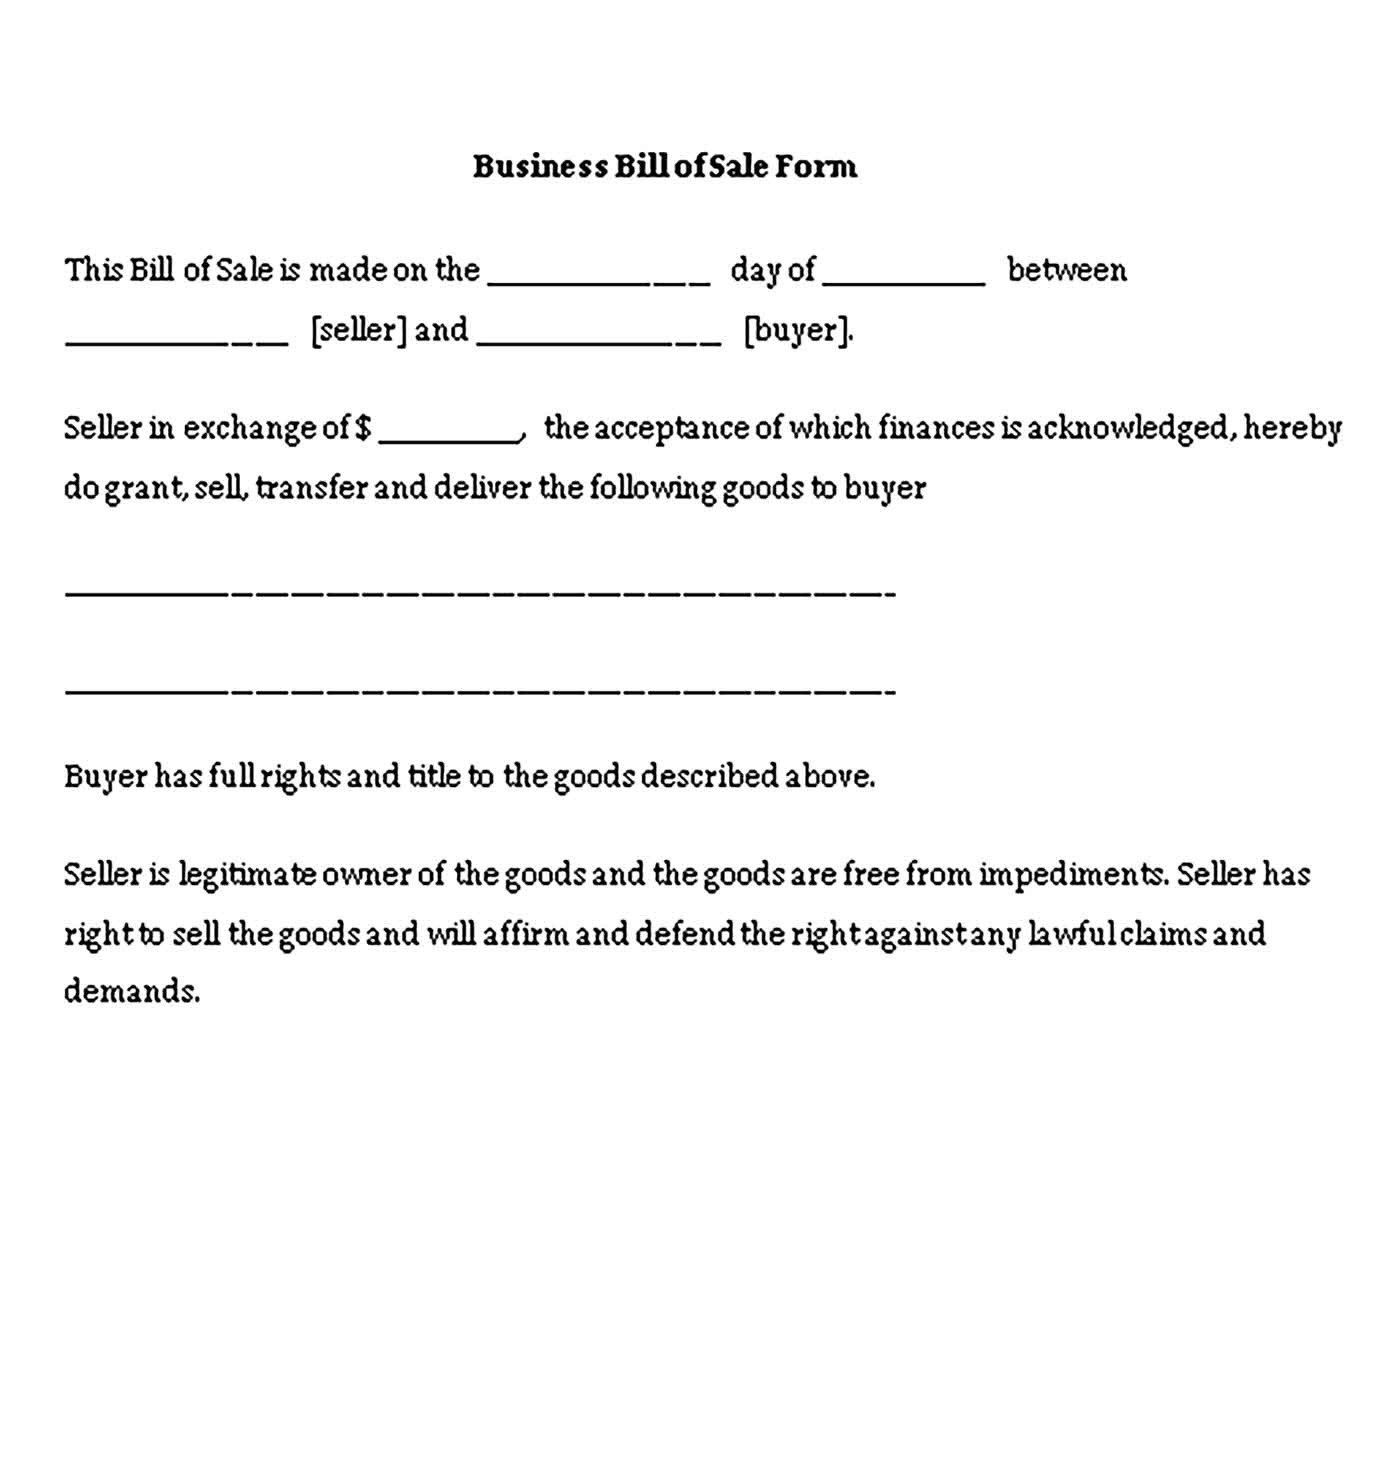 Sample business bill of sale 003 Templates 1